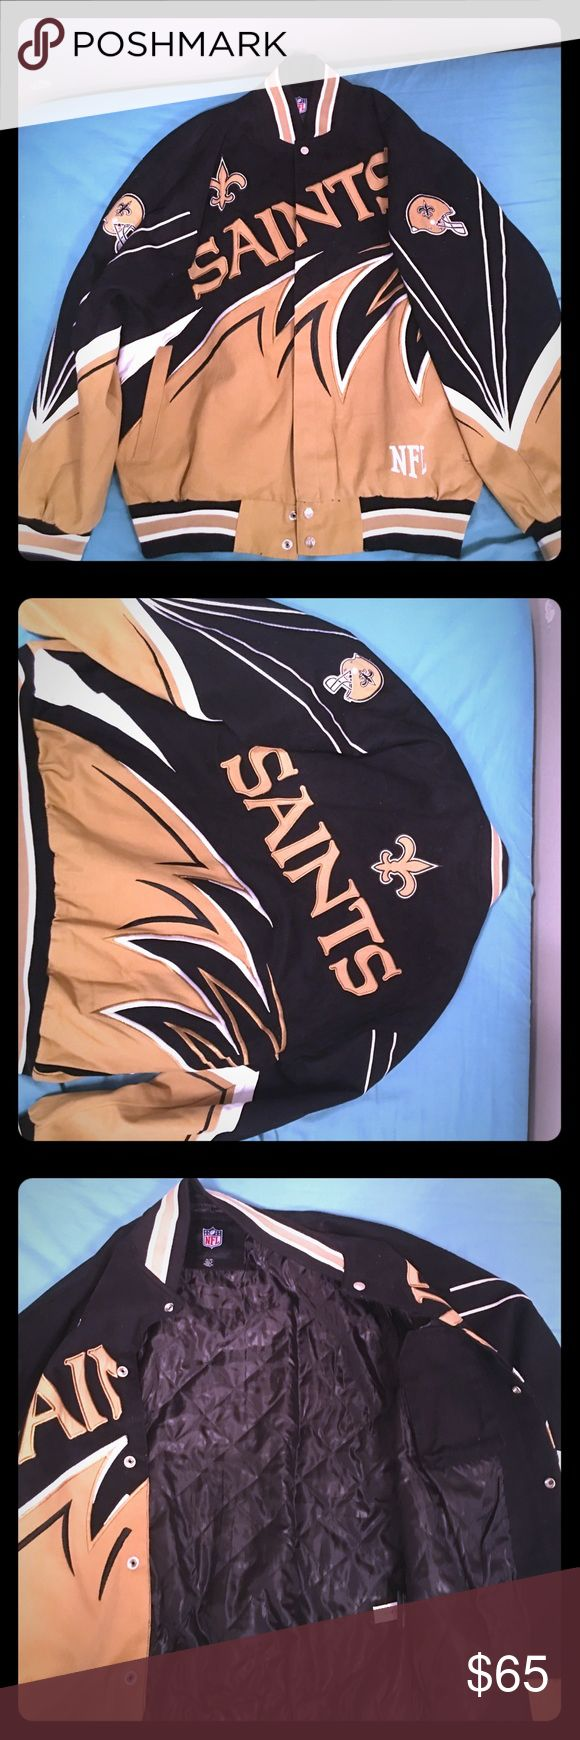 NFL New Orleans Saints Jacket Black/Gold/White New Orleans Saints Button Up Jacket. Jackets & Coats